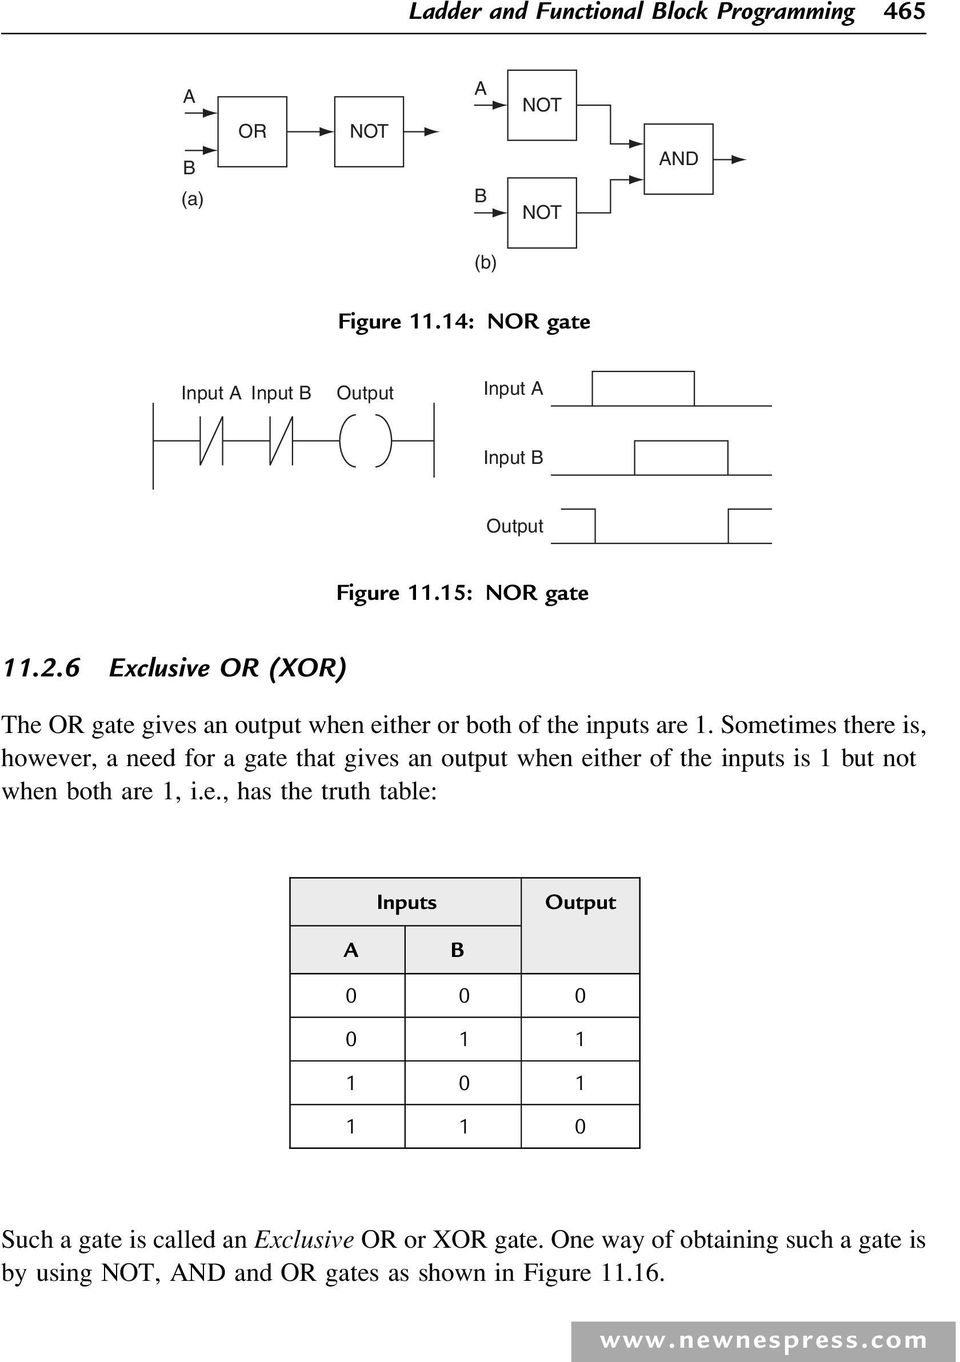 Ladder And Functional Block Programming Pdf Relay Logic Diagram Of Xor Gate Sometimes There Is However A Need For That Gives An Output When